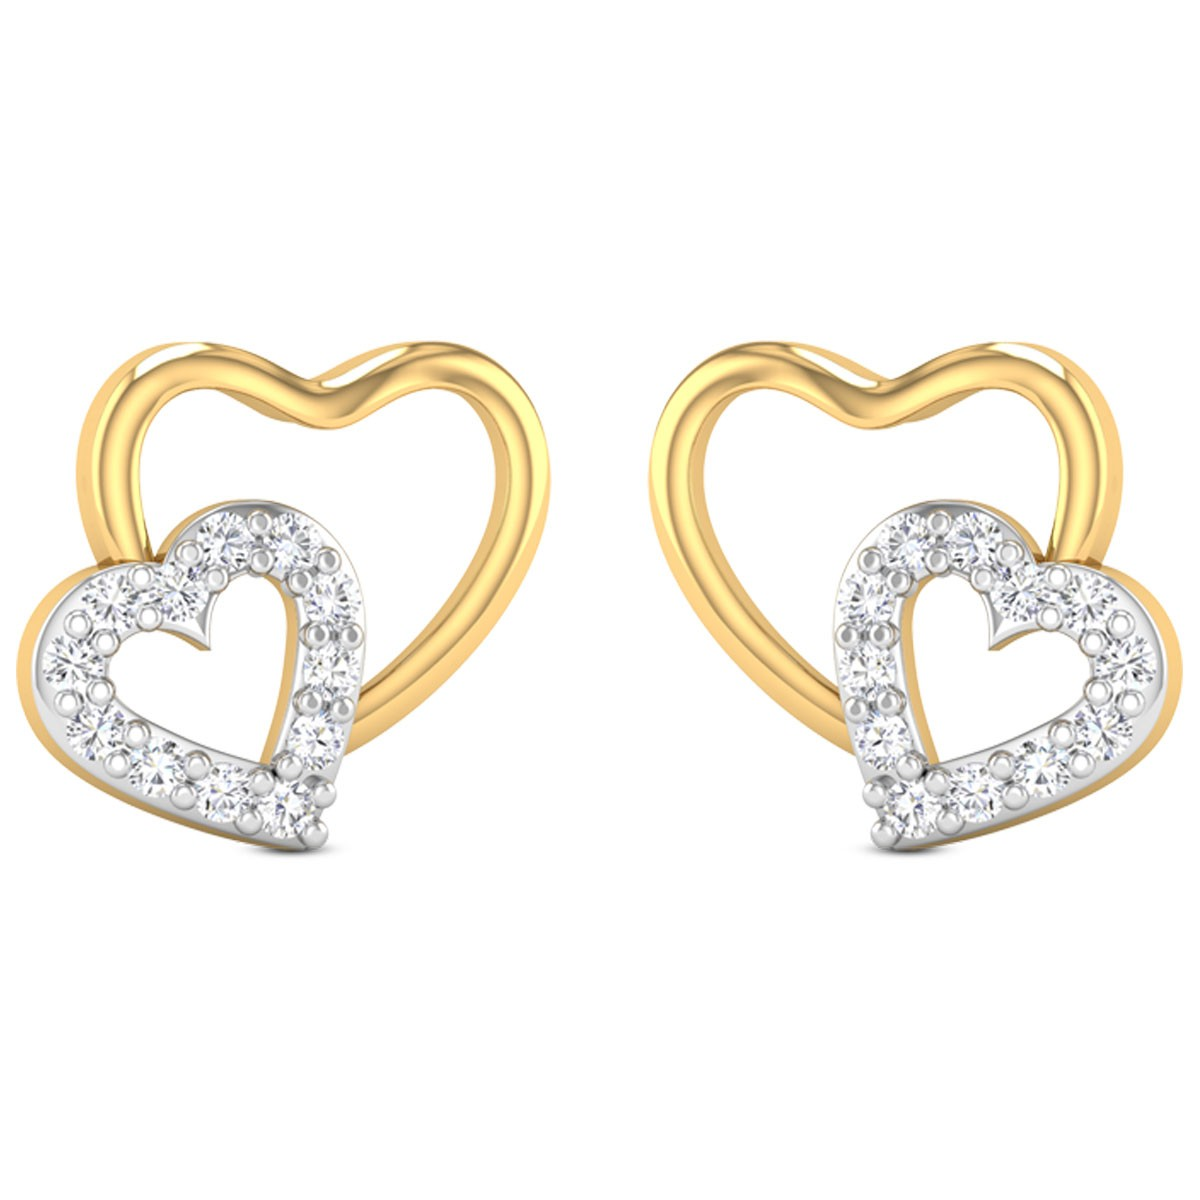 Tal Diamond Earrings